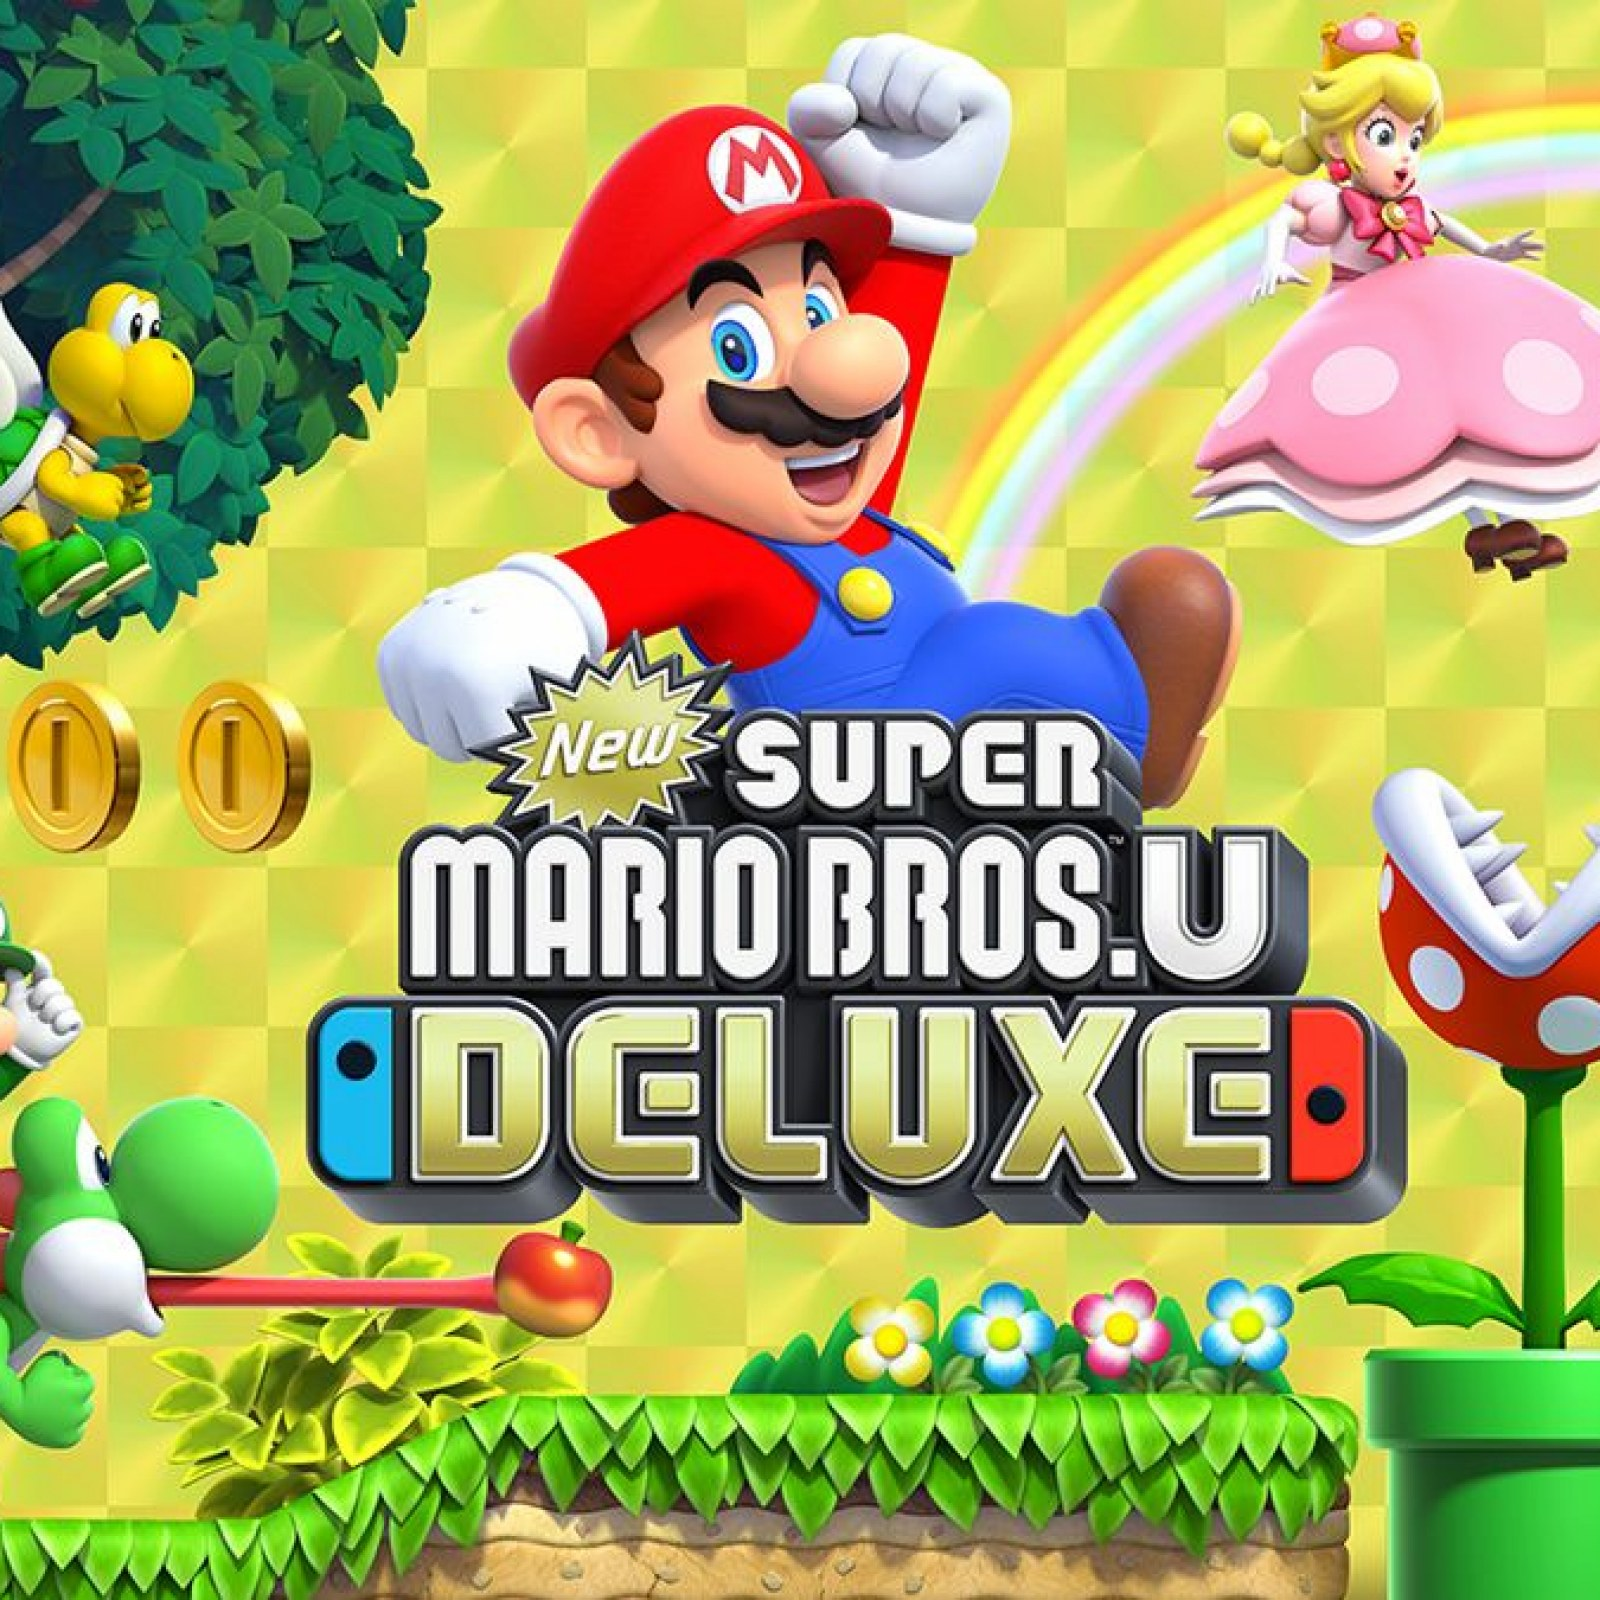 New Super Mario Bros U Deluxe Review Fun And Full Of Content